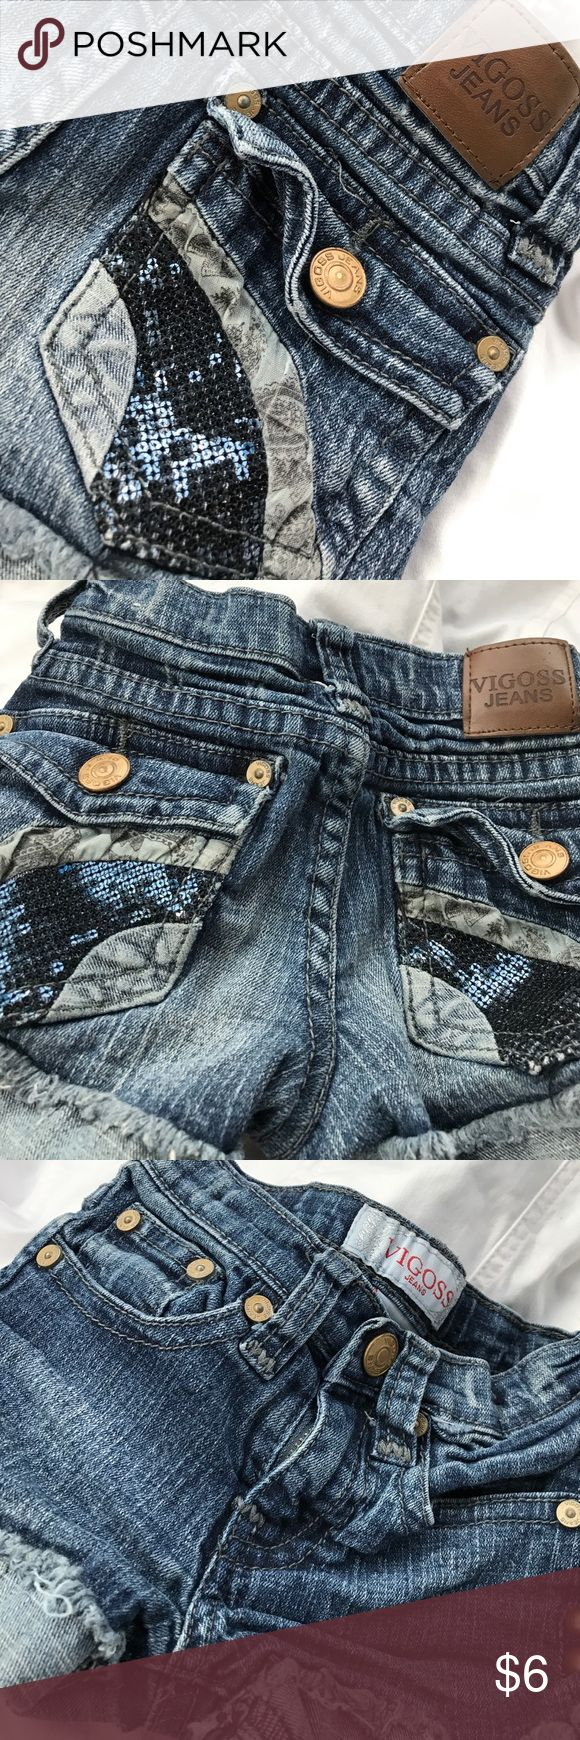 Vigoss sparkle jeans for your 👸 Super cute summer shorts with sequined striped back pockets Vigoss Bottoms Shorts